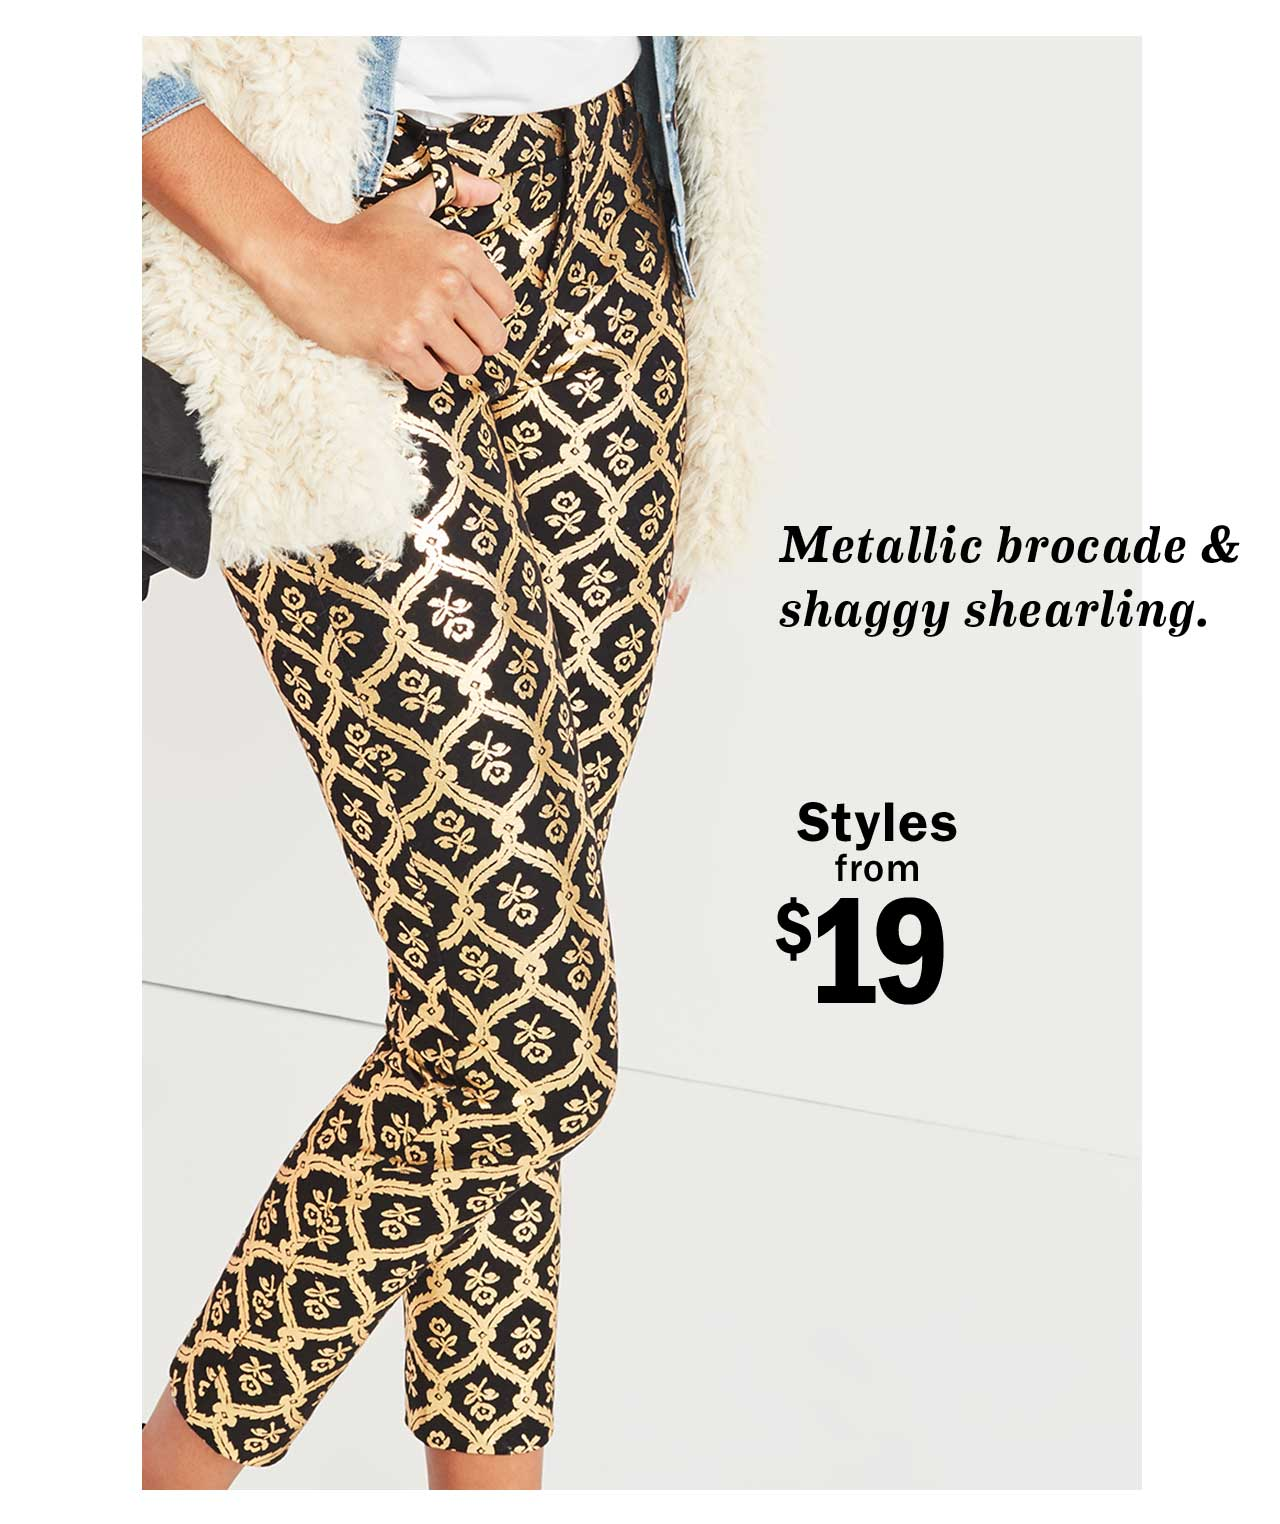 Styles from $19